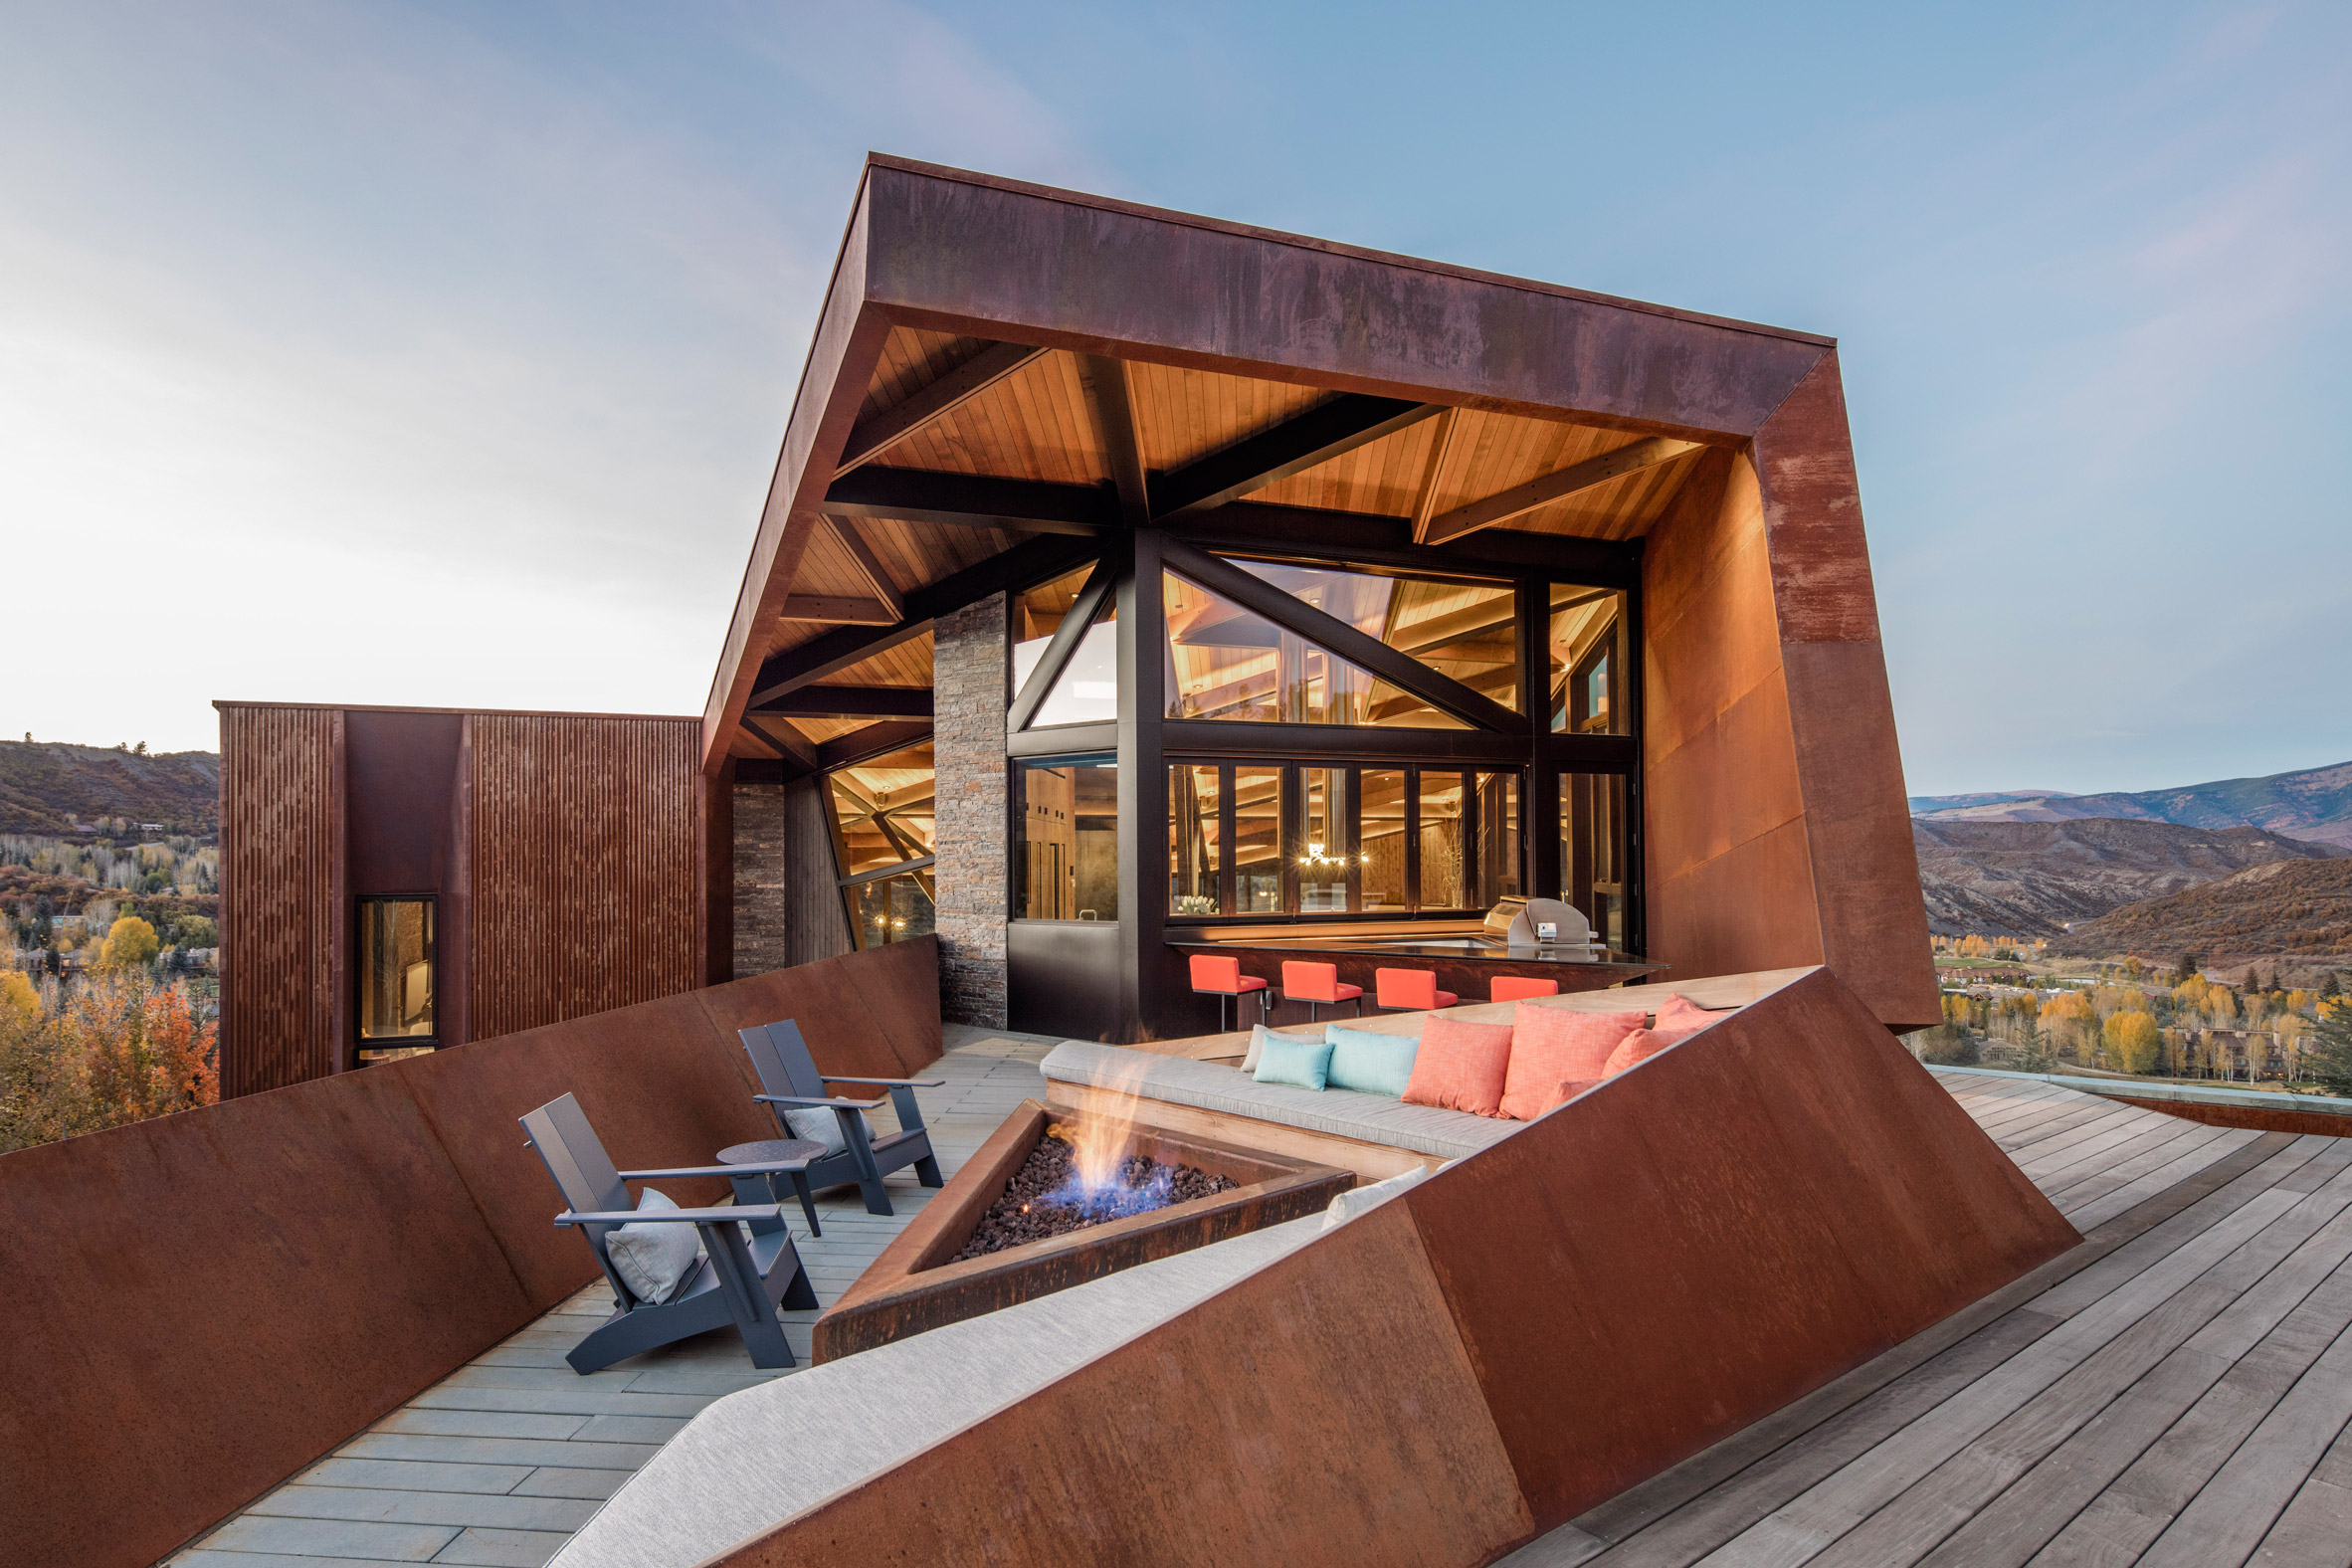 Triangular house by Skylab provides sweeping Rocky Mountain views